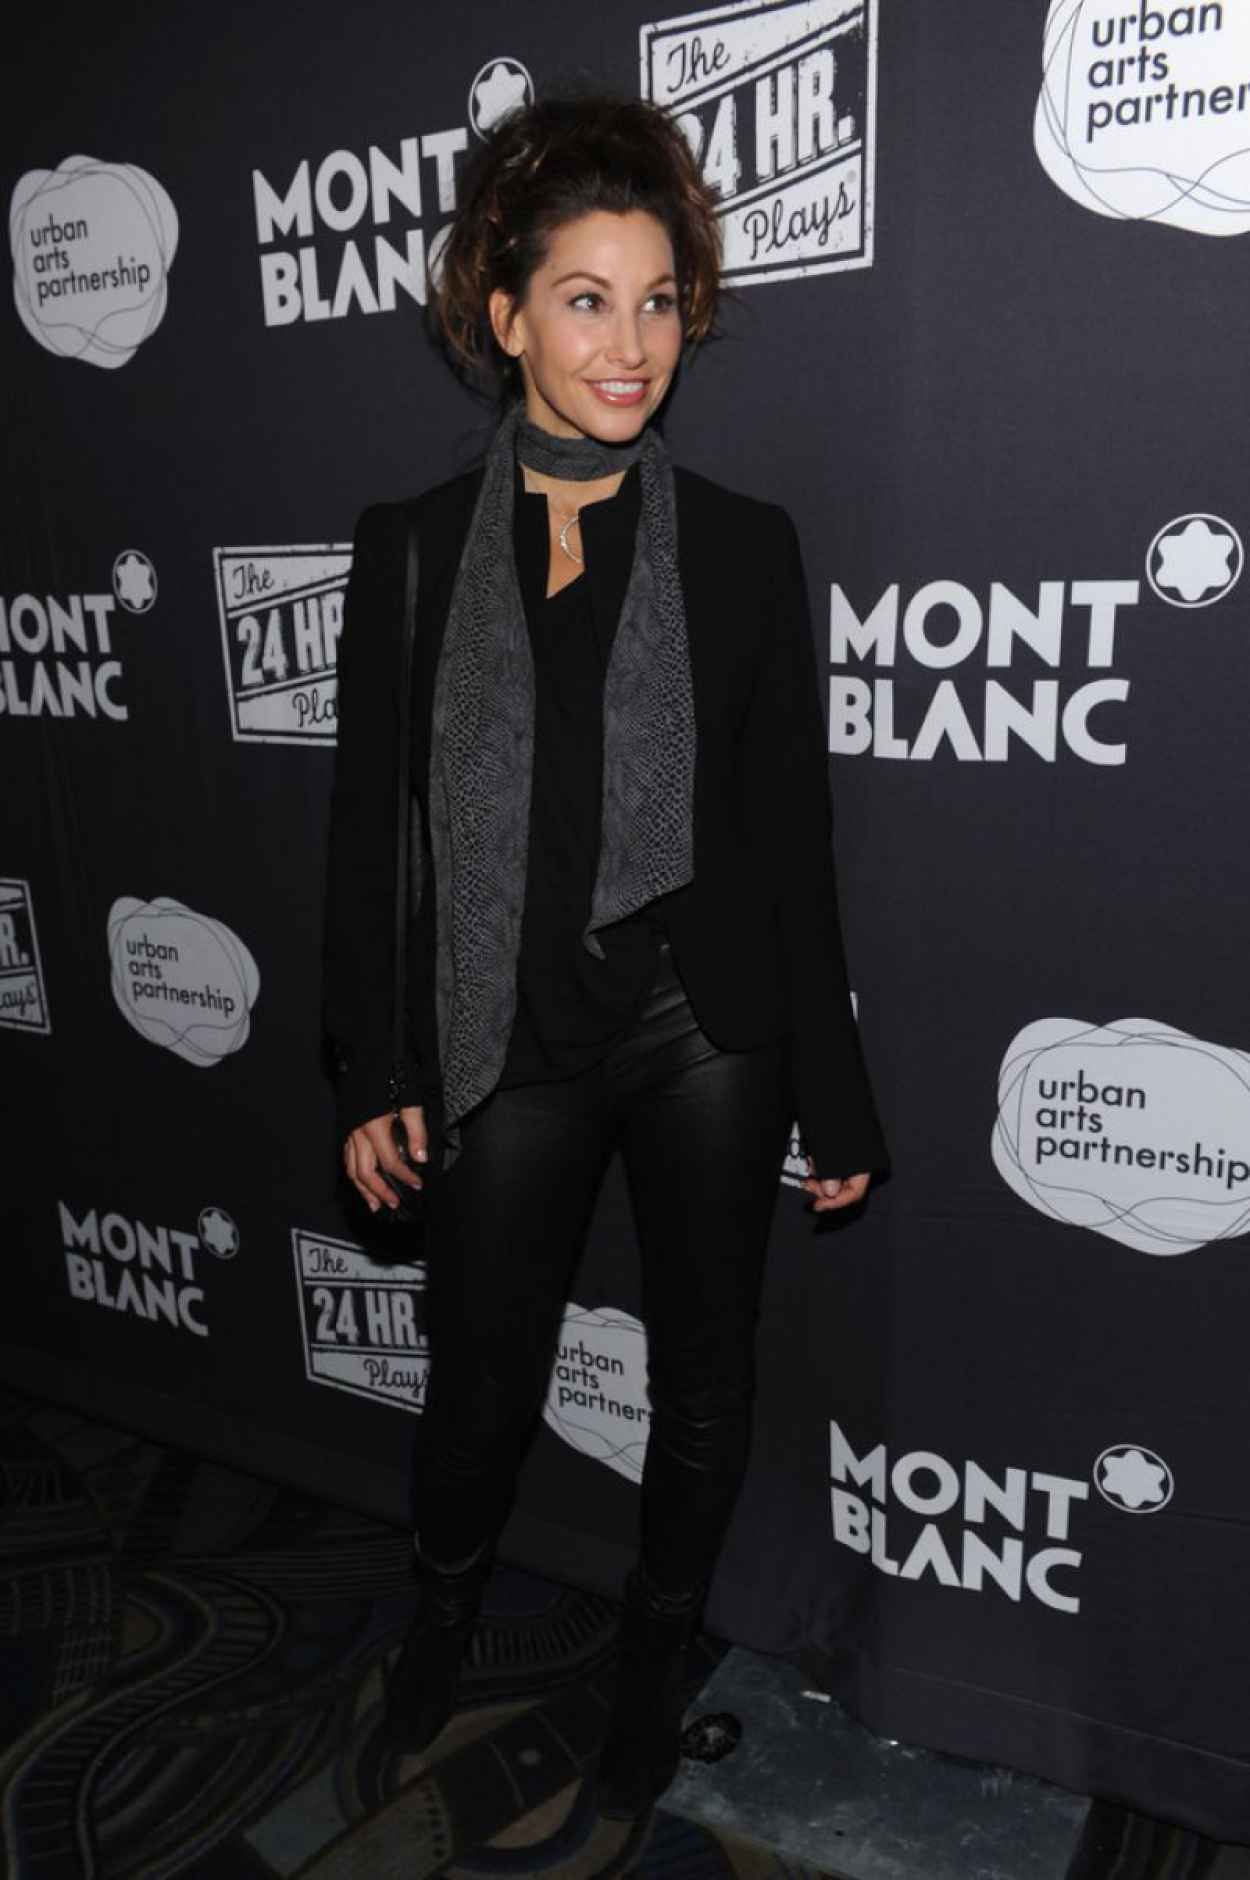 Gina Gershon Photos From The 13th Annual 24 Hour Plays On Broadway After Party New York City-1